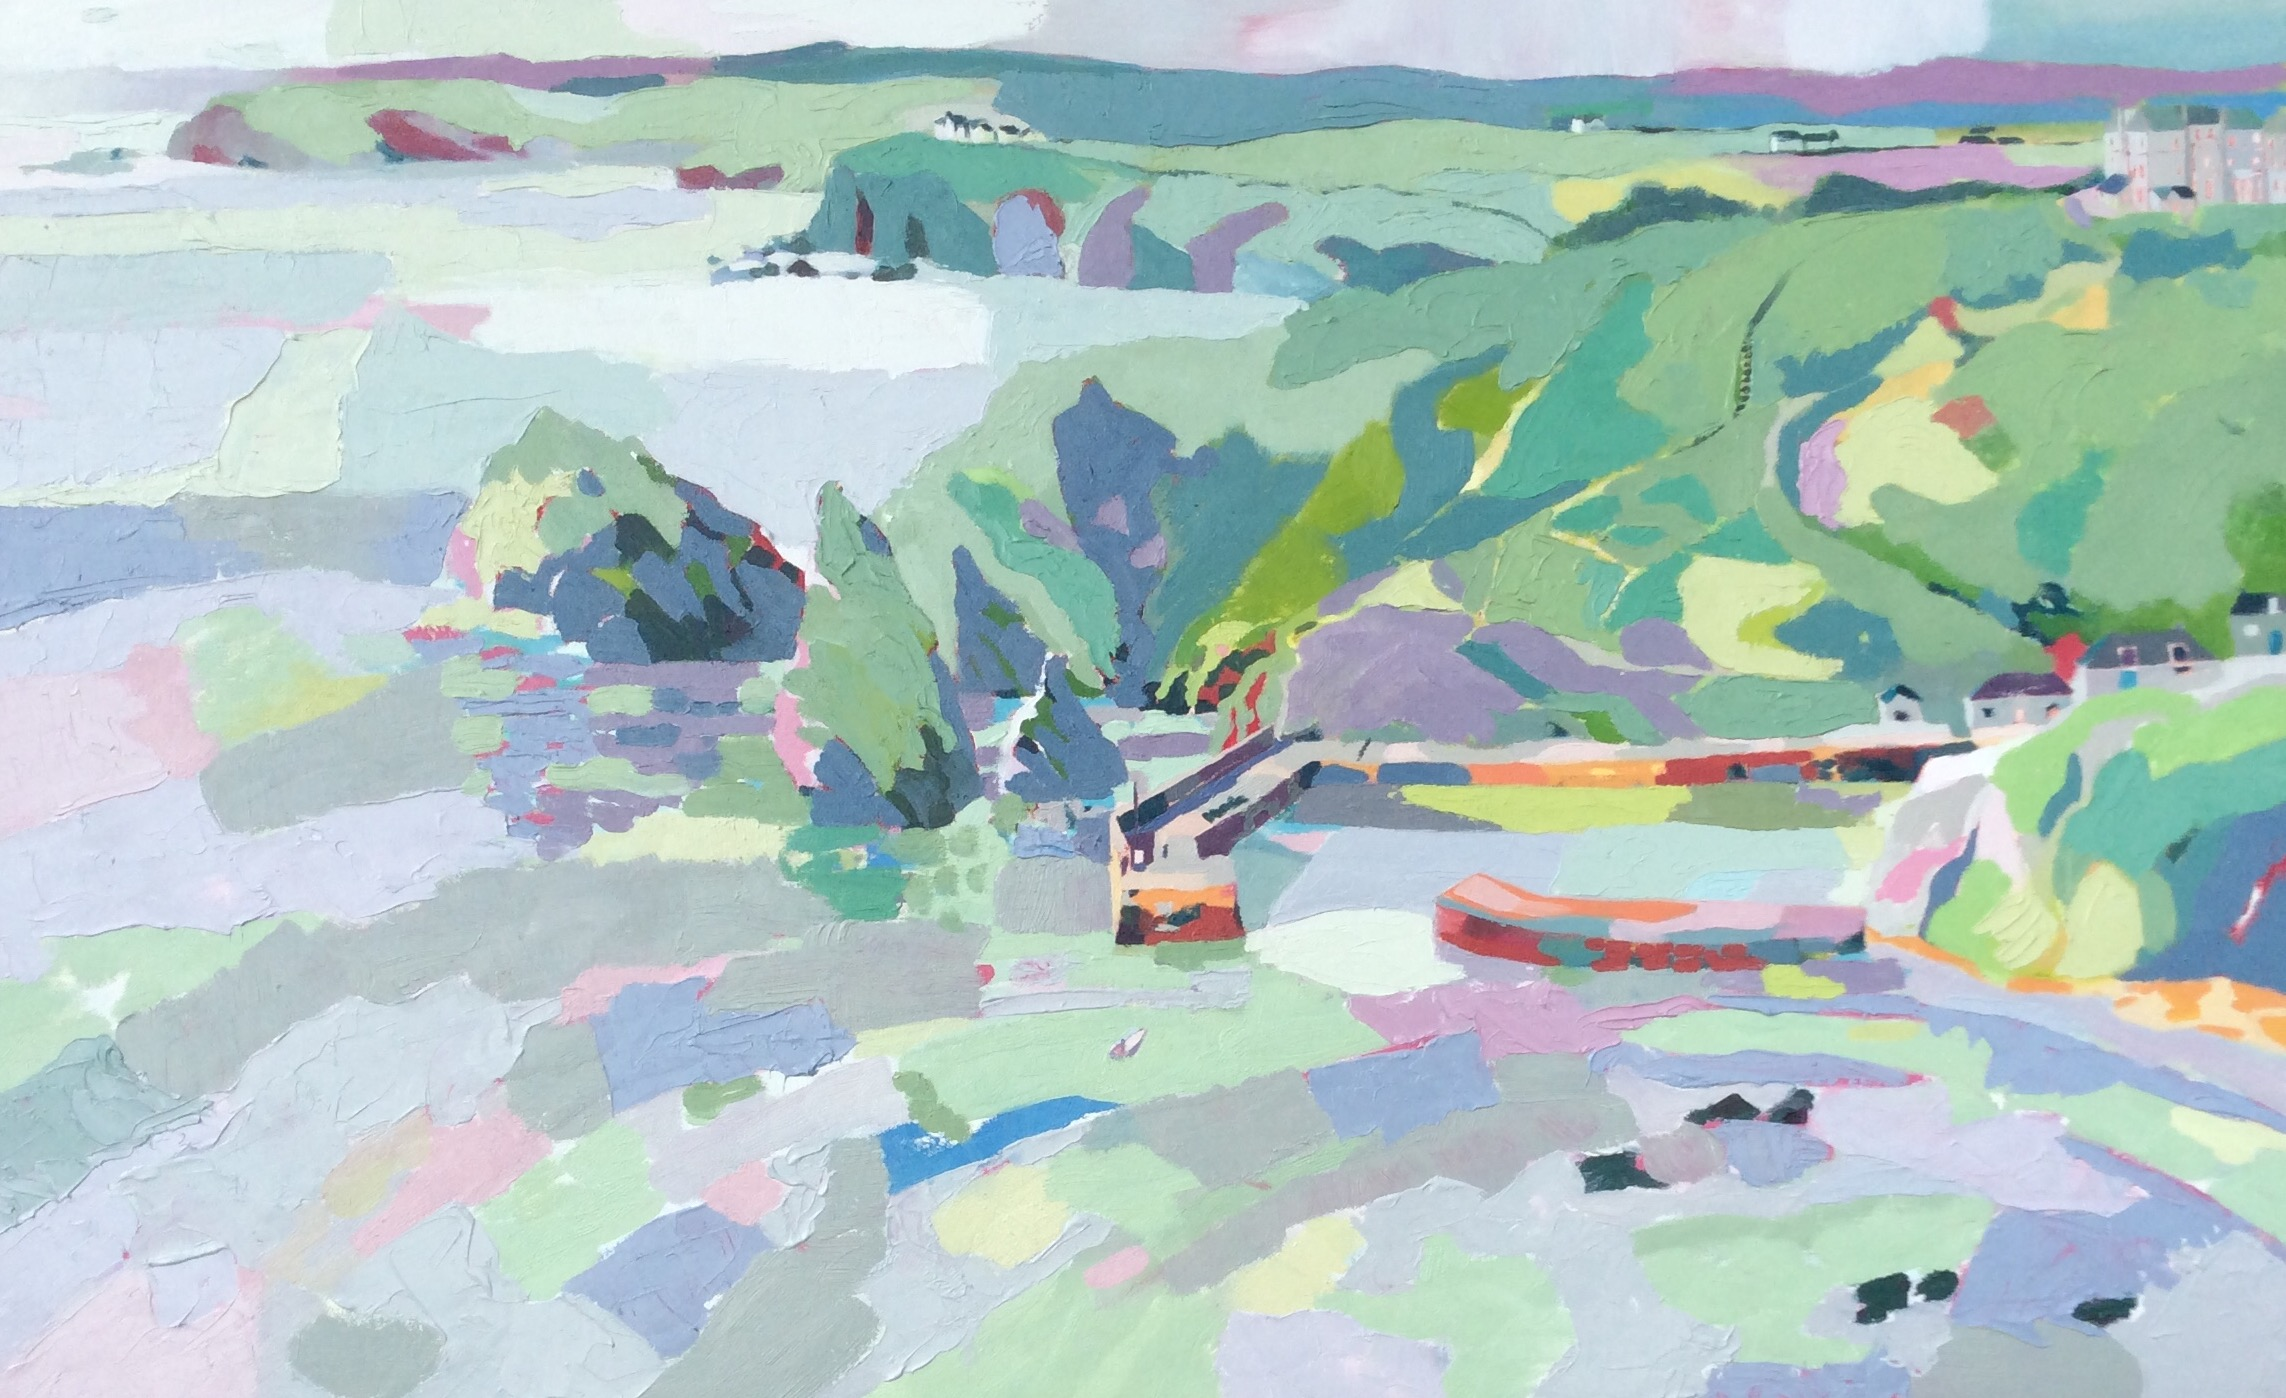 Mullion Cove in Soft Light. Oil on canvas. 60 x 97.5 cm. (Sold)